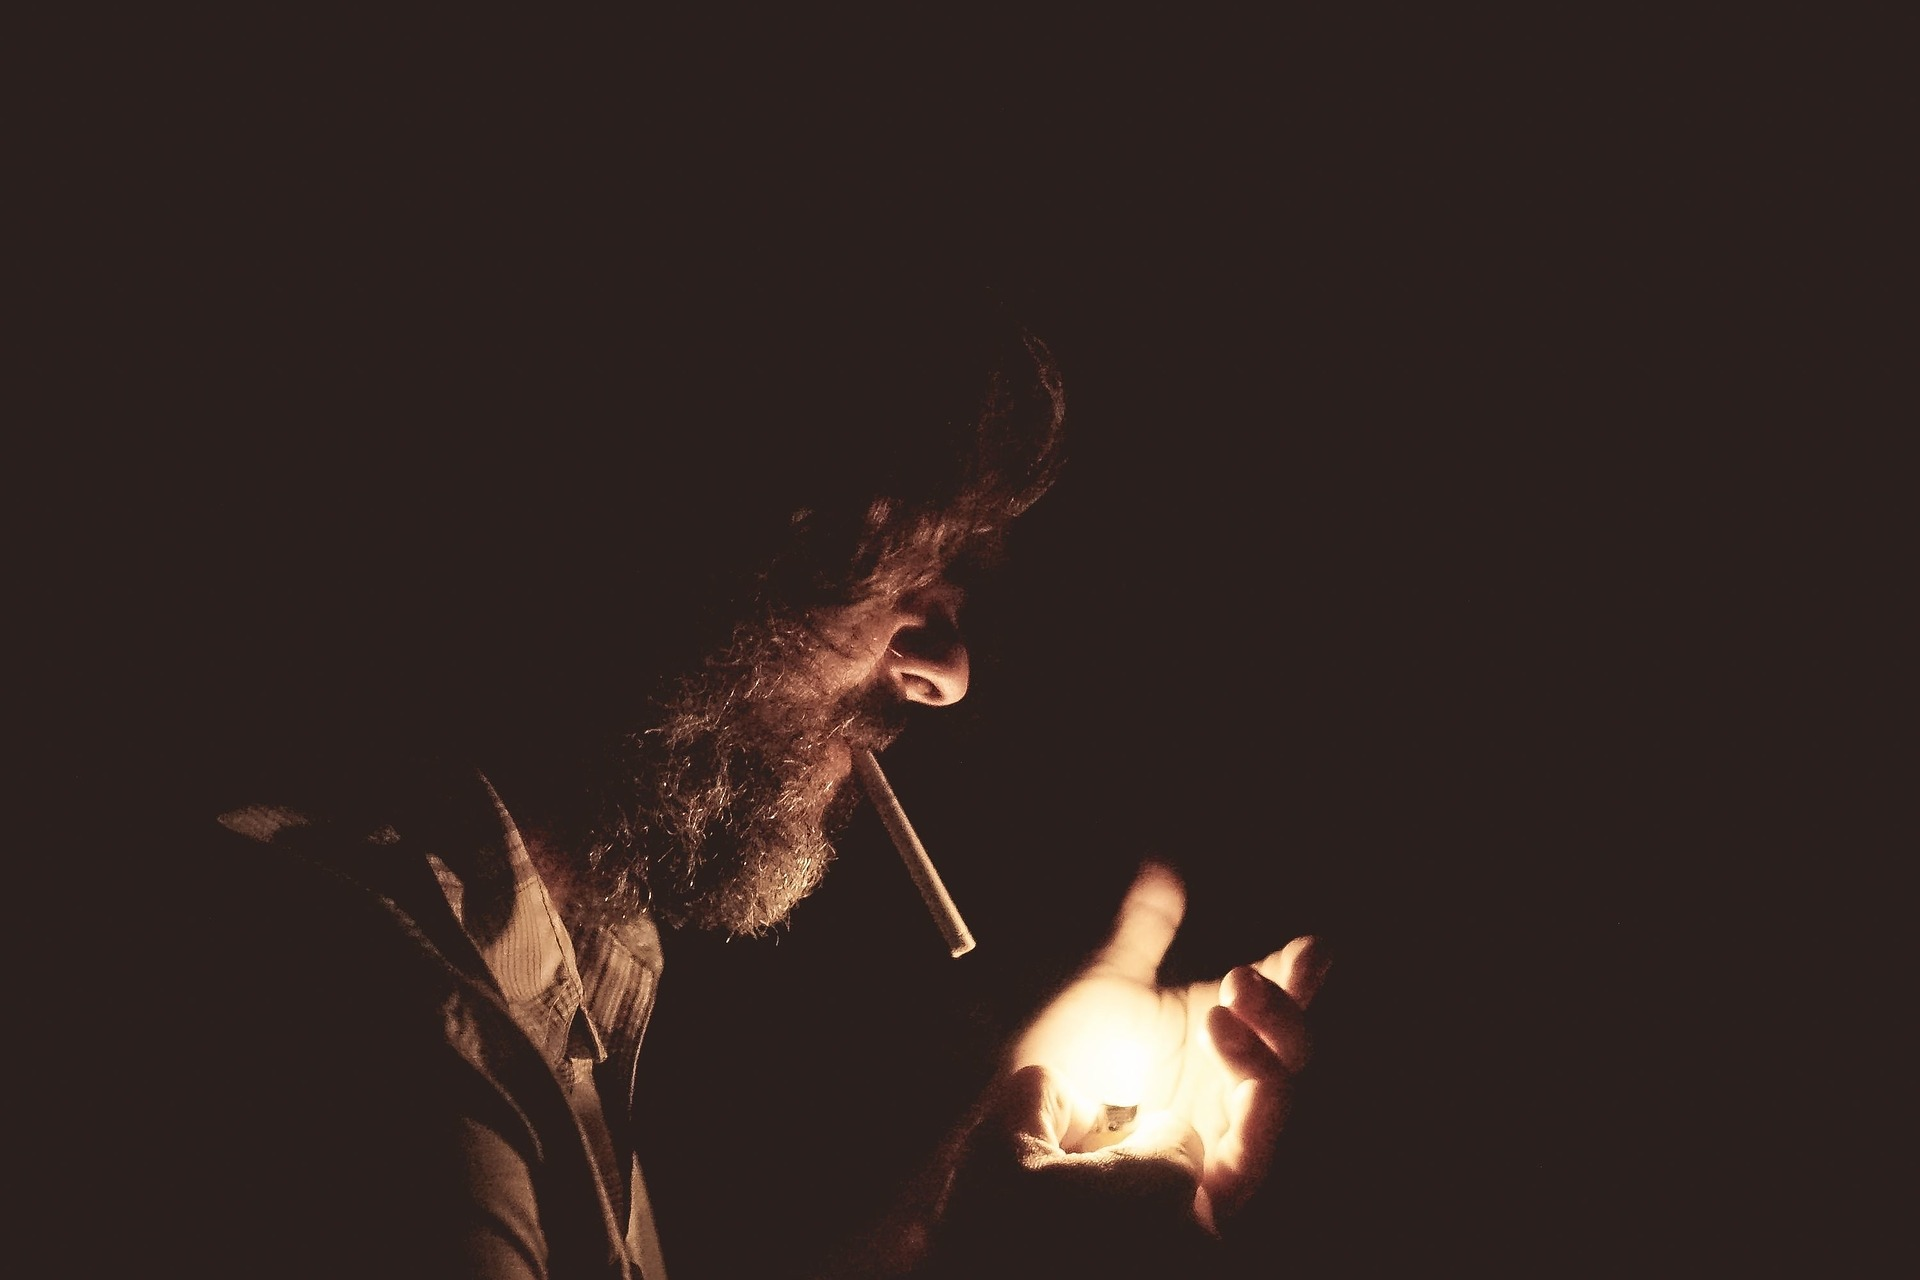 Alone Hd Wallpapers 1080p Smoking In Films Differences Between The Uk And Us Bmc